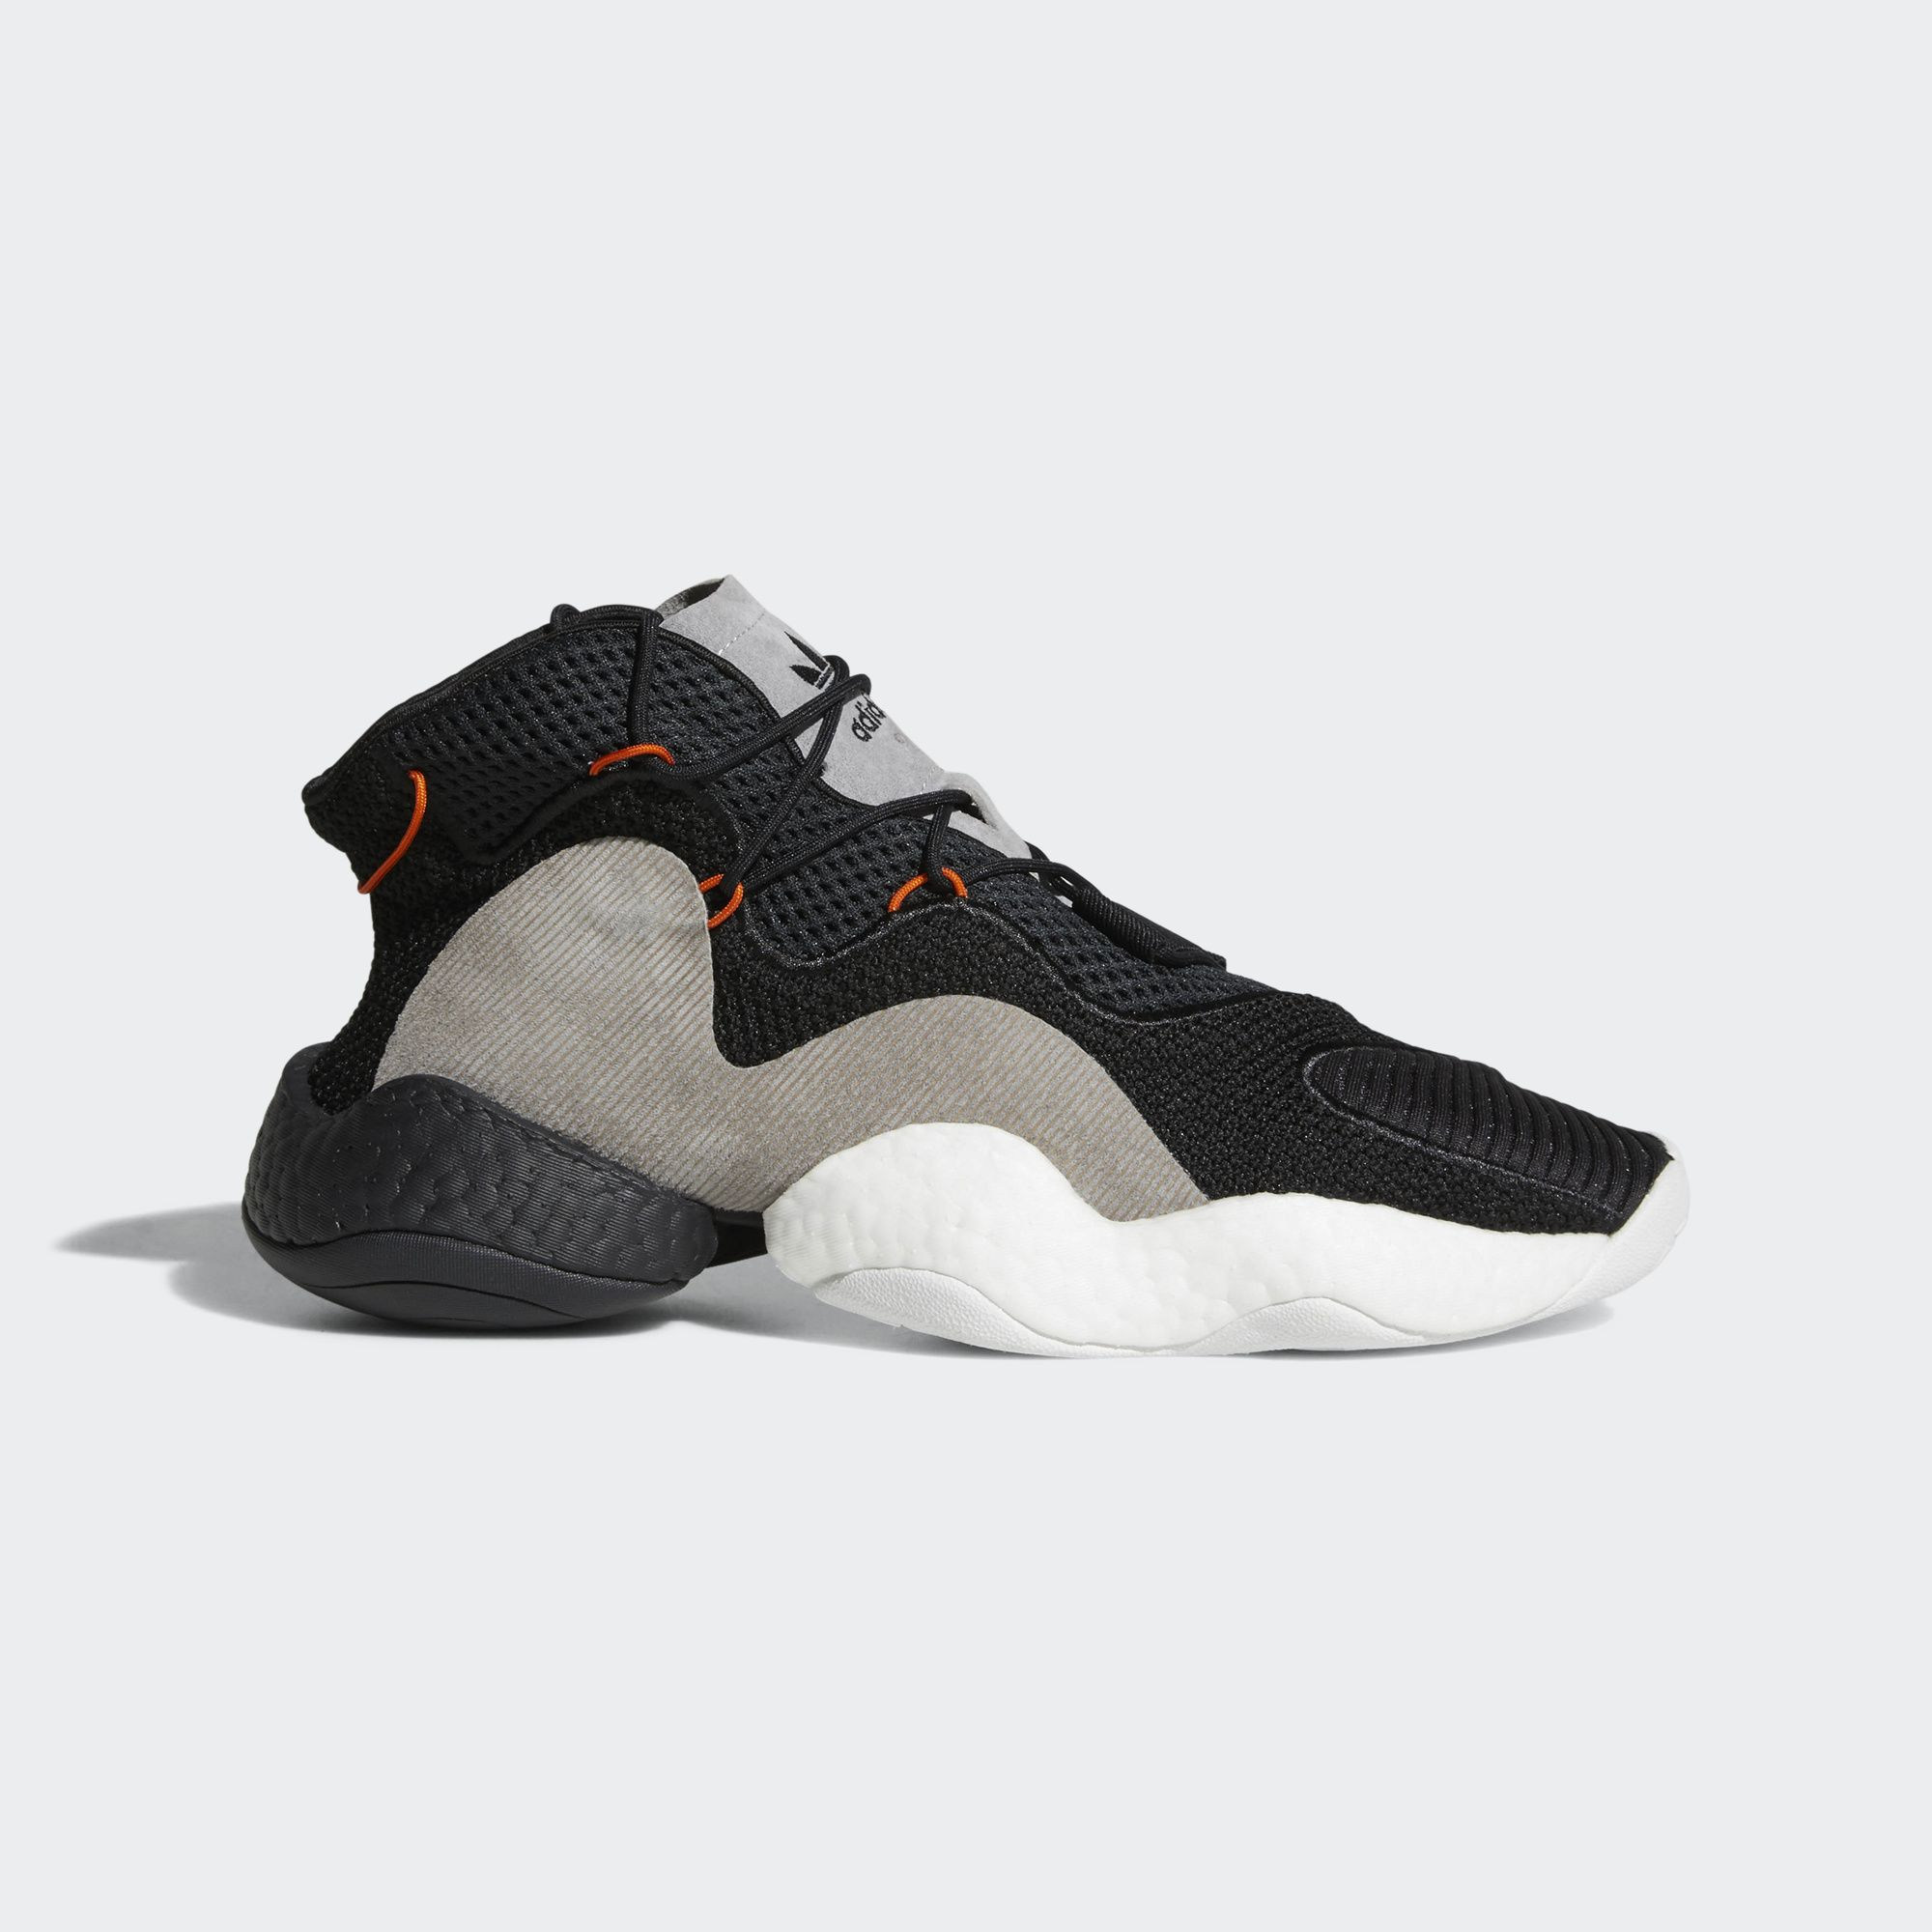 new concept d9c21 25e70 This Neutral Colorway of the adidas Crazy BYW LVL 1 Finally